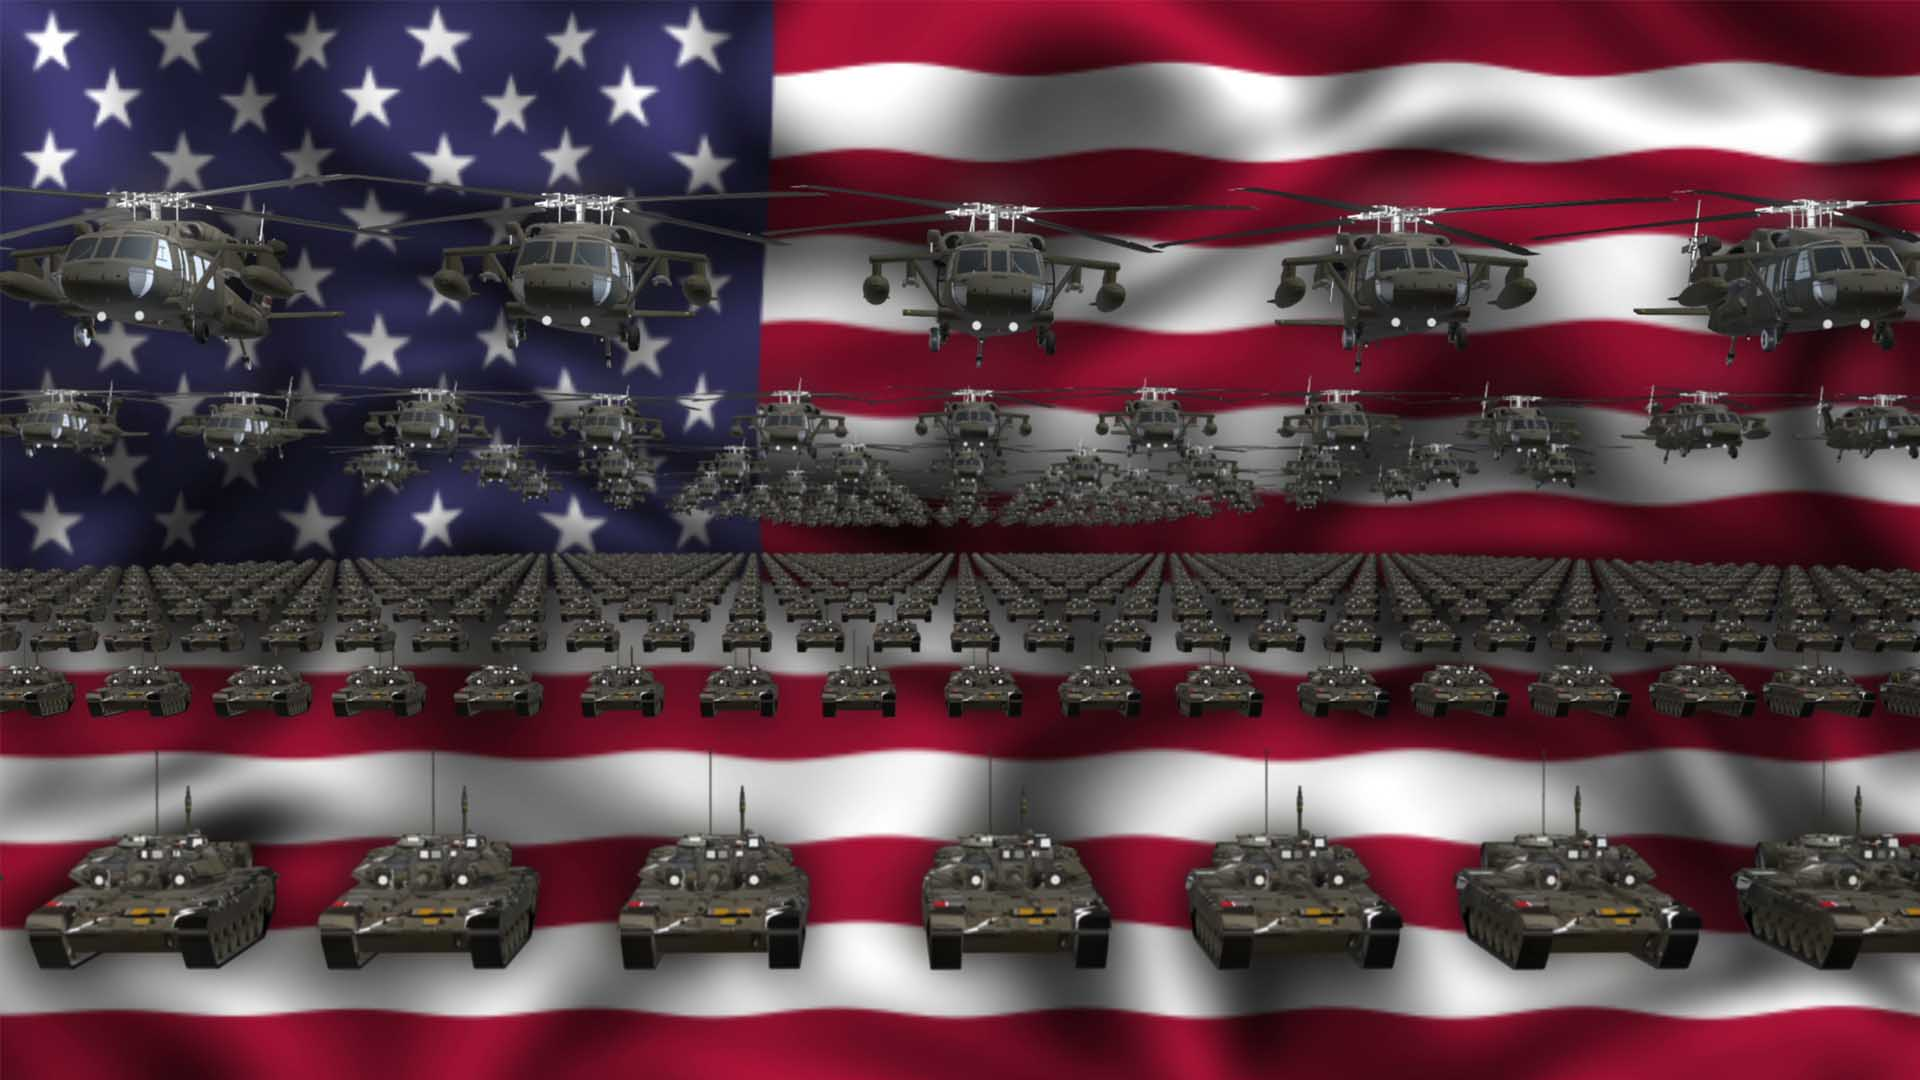 USA Army video background vj loop